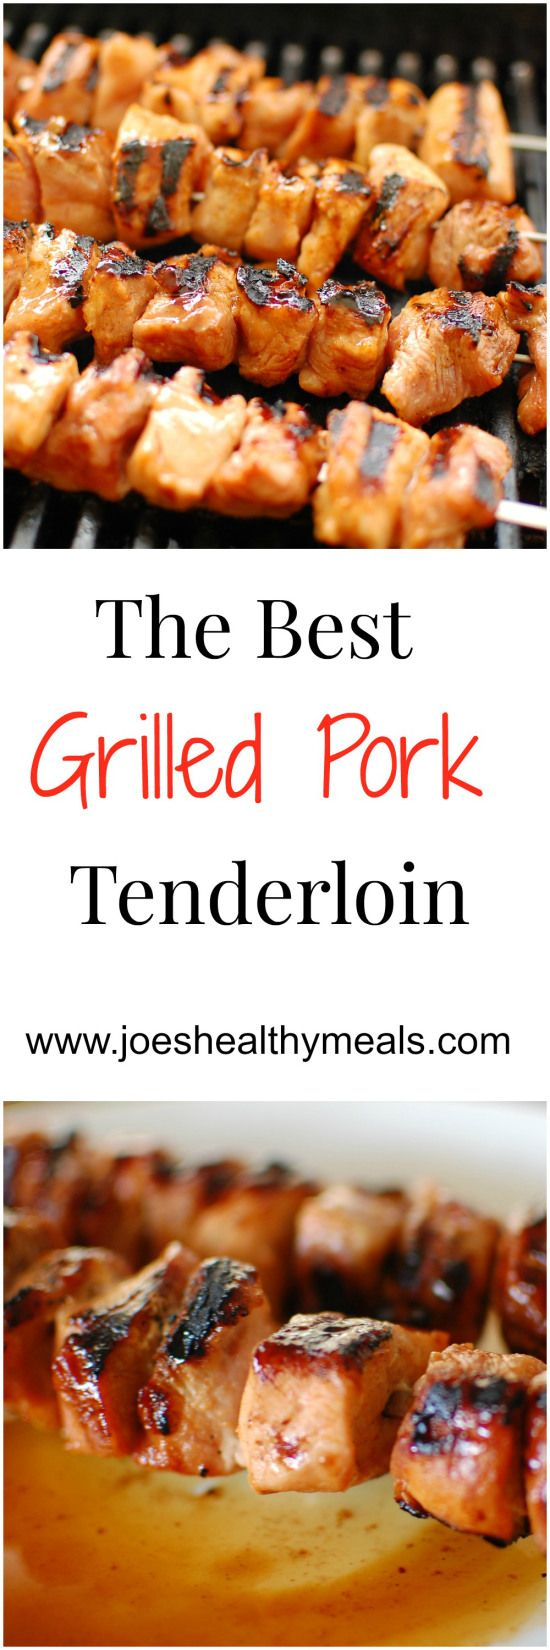 Grilled pork tenderloin kicked up with Sriracha hot sauce and brown sugar.  Super easy and delicious! | joeshealthymeals.com